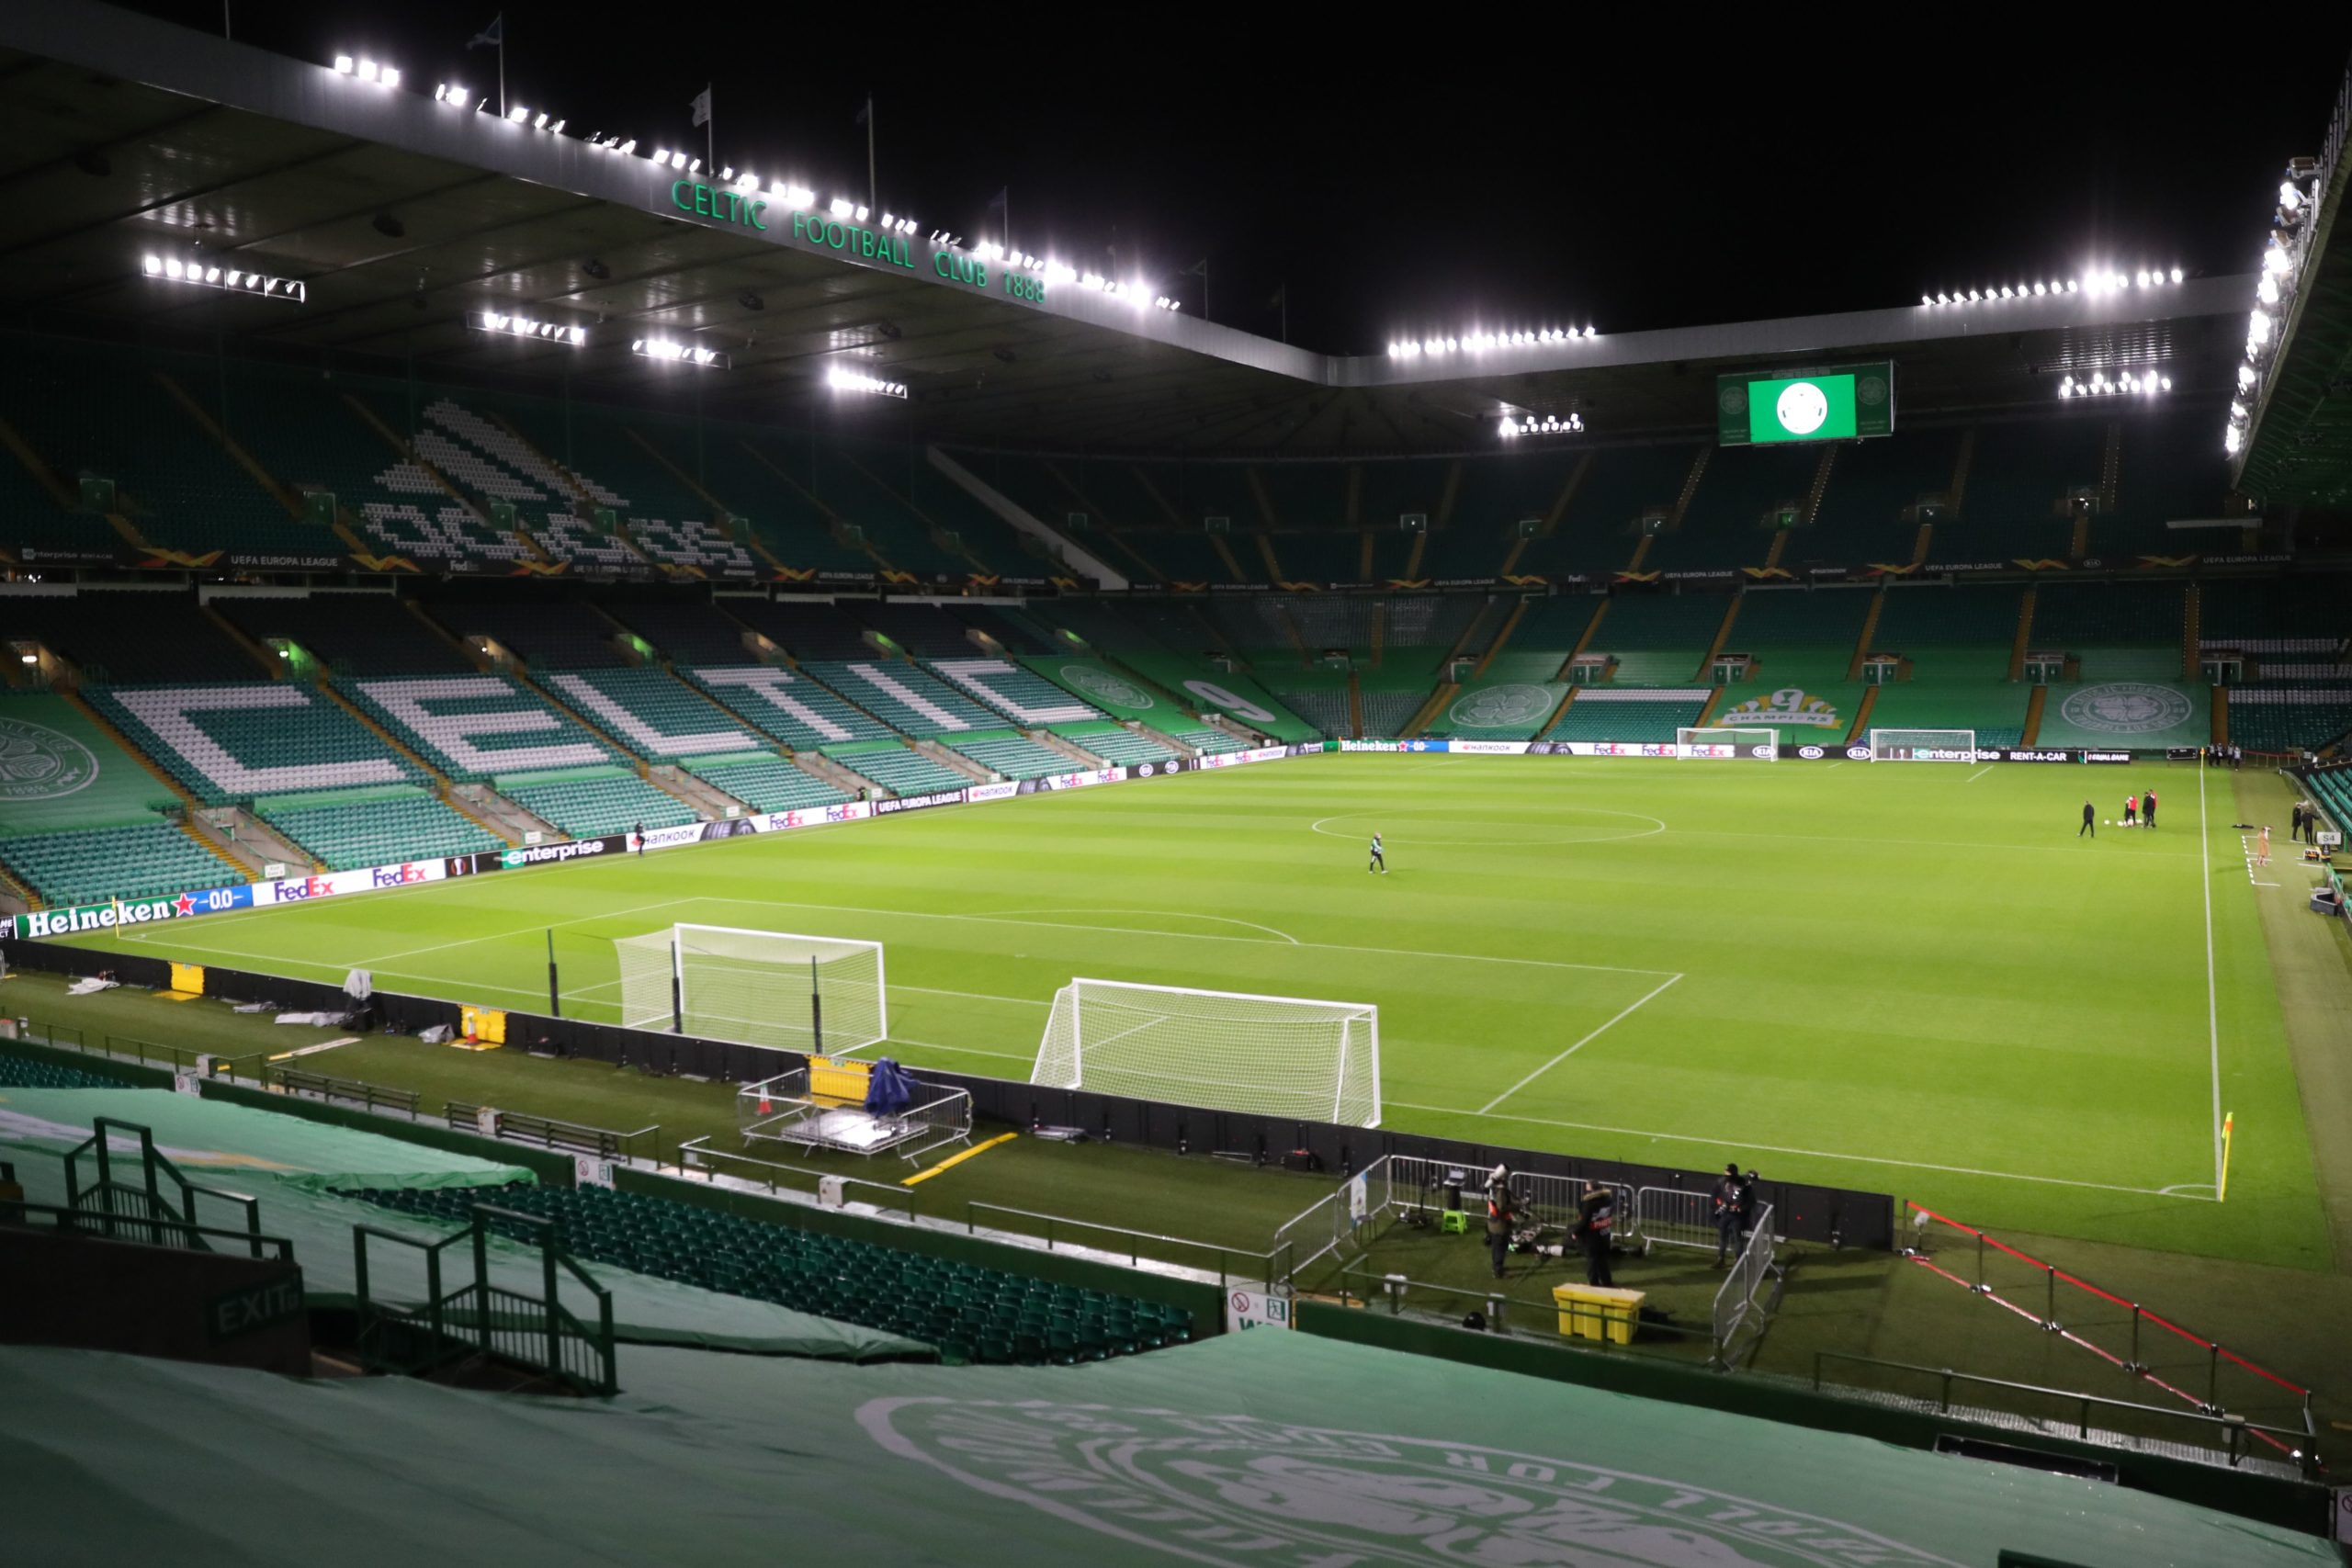 Celtic Park will welcome fans back next season